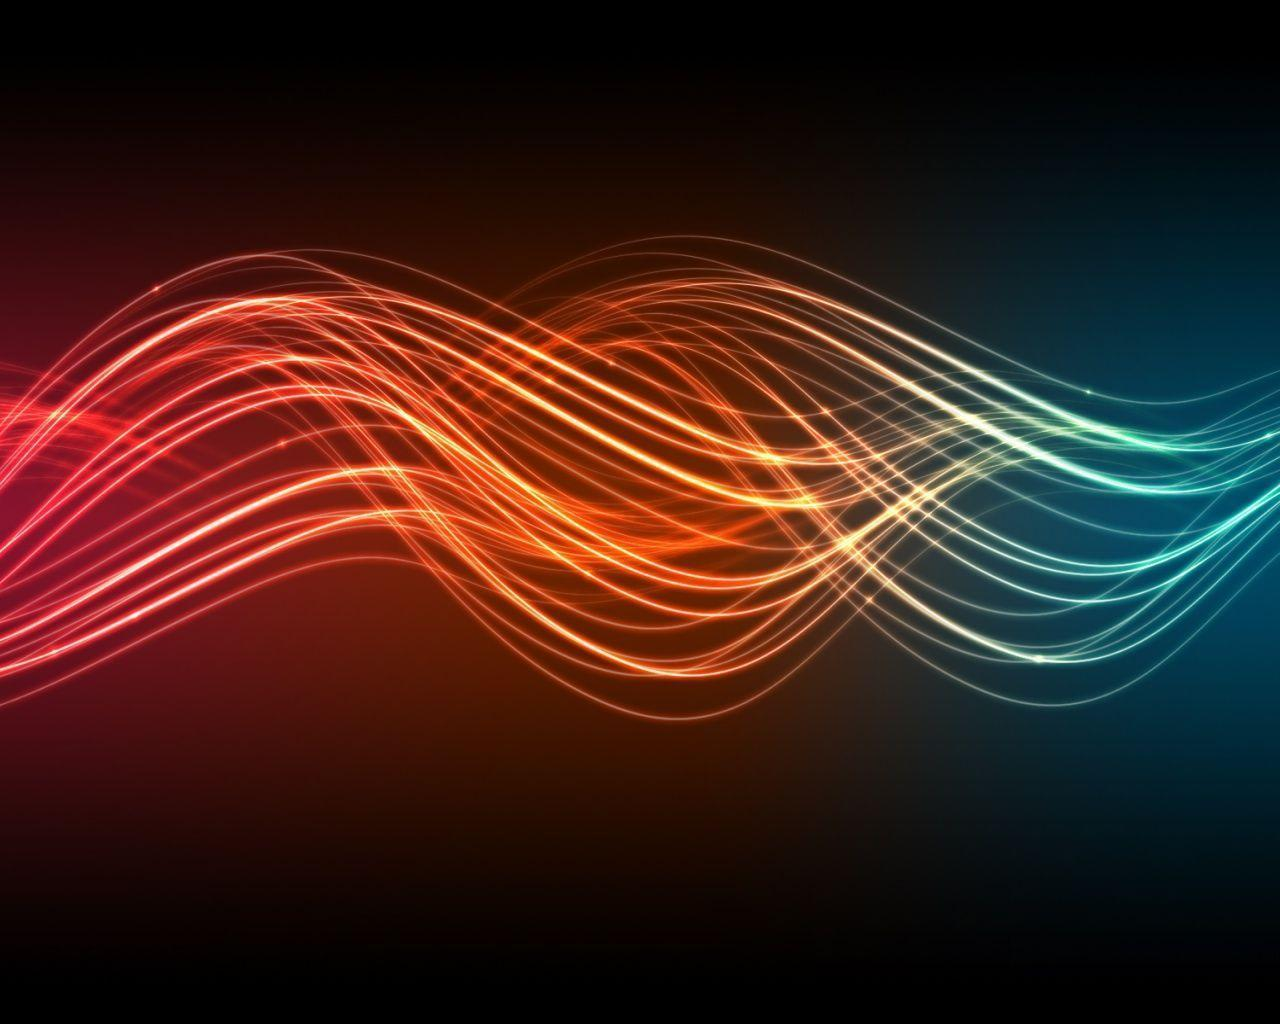 Acoustic Sound Waves : Sound wave wallpapers wallpaper cave